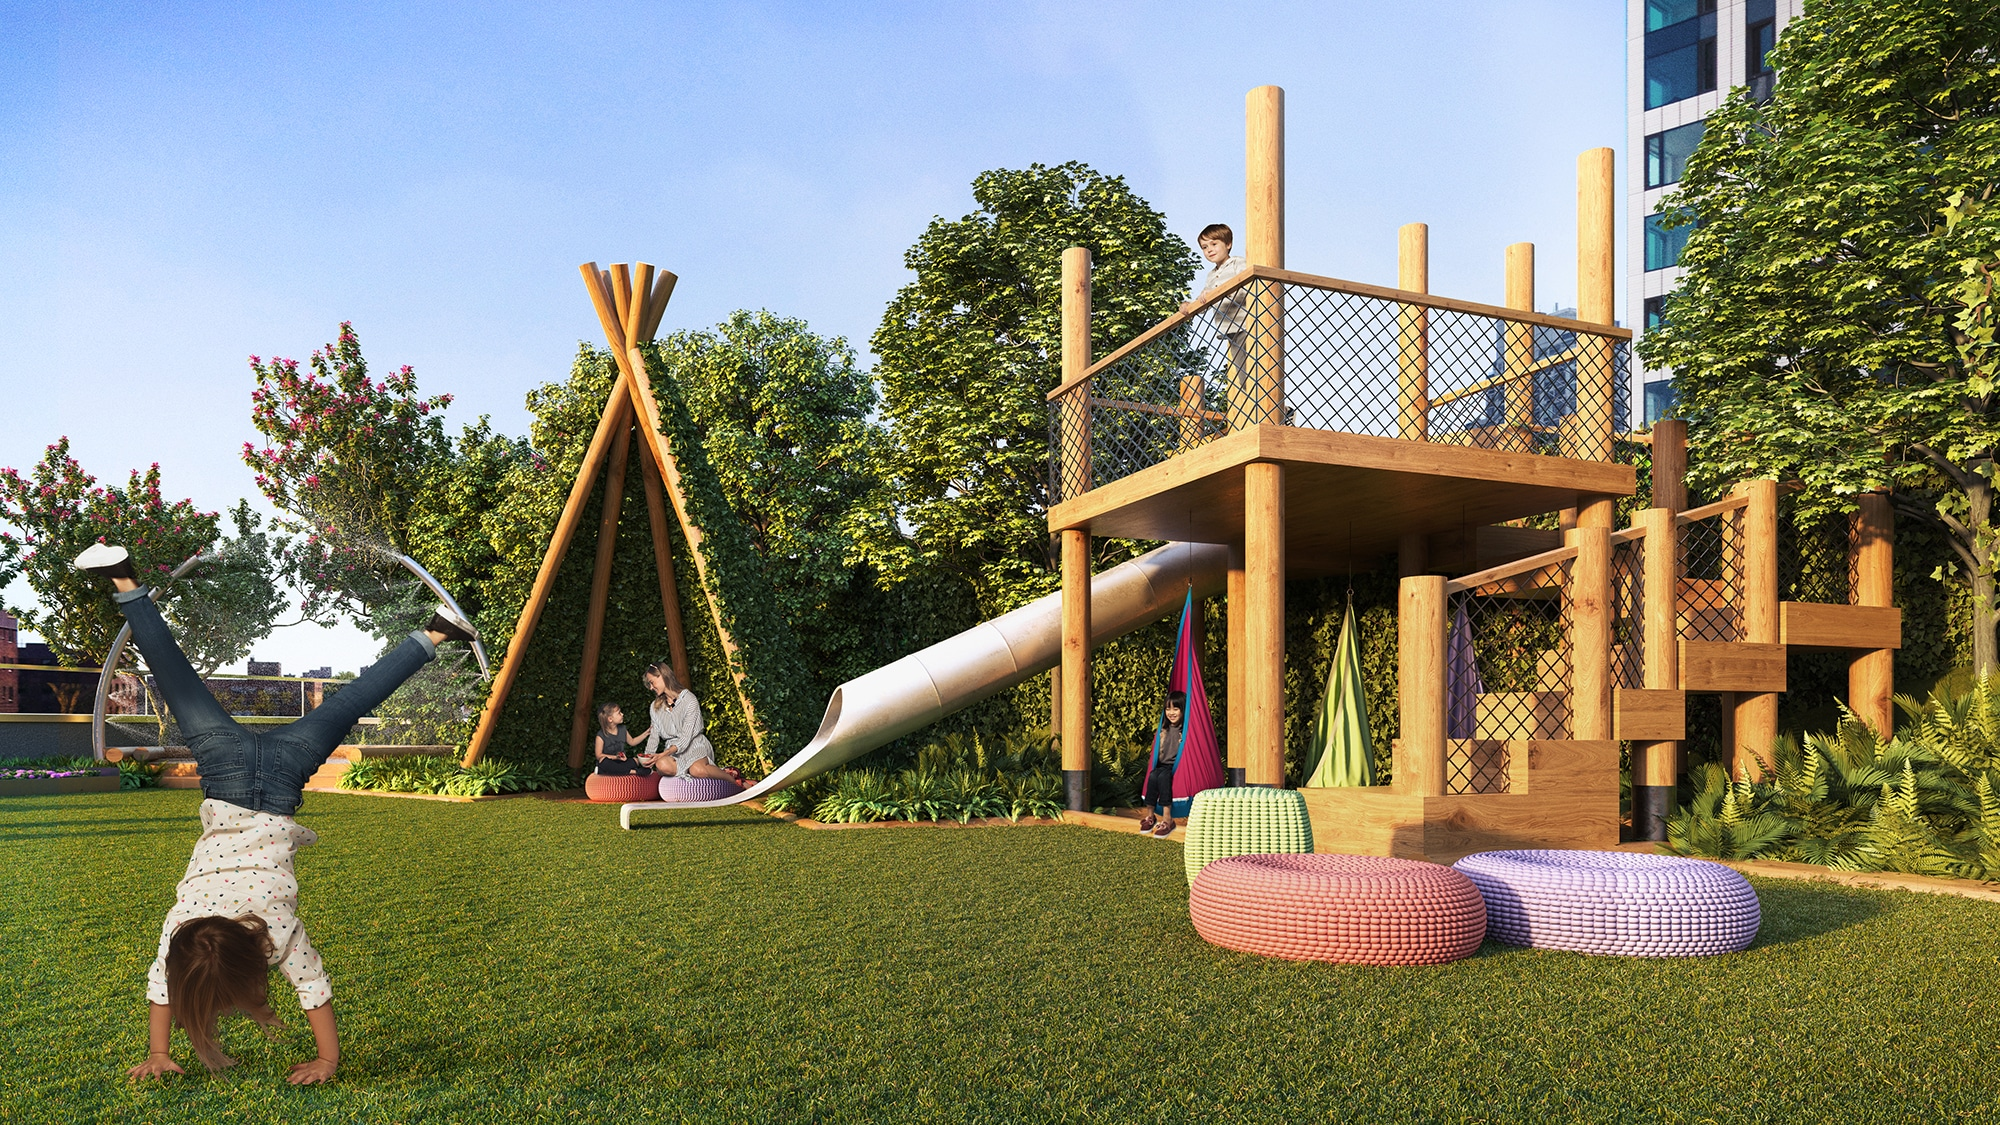 Terrace playroom at Brooklyn Point luxury condos in New York. Large lawn area with wooden play house, slide and teepee.